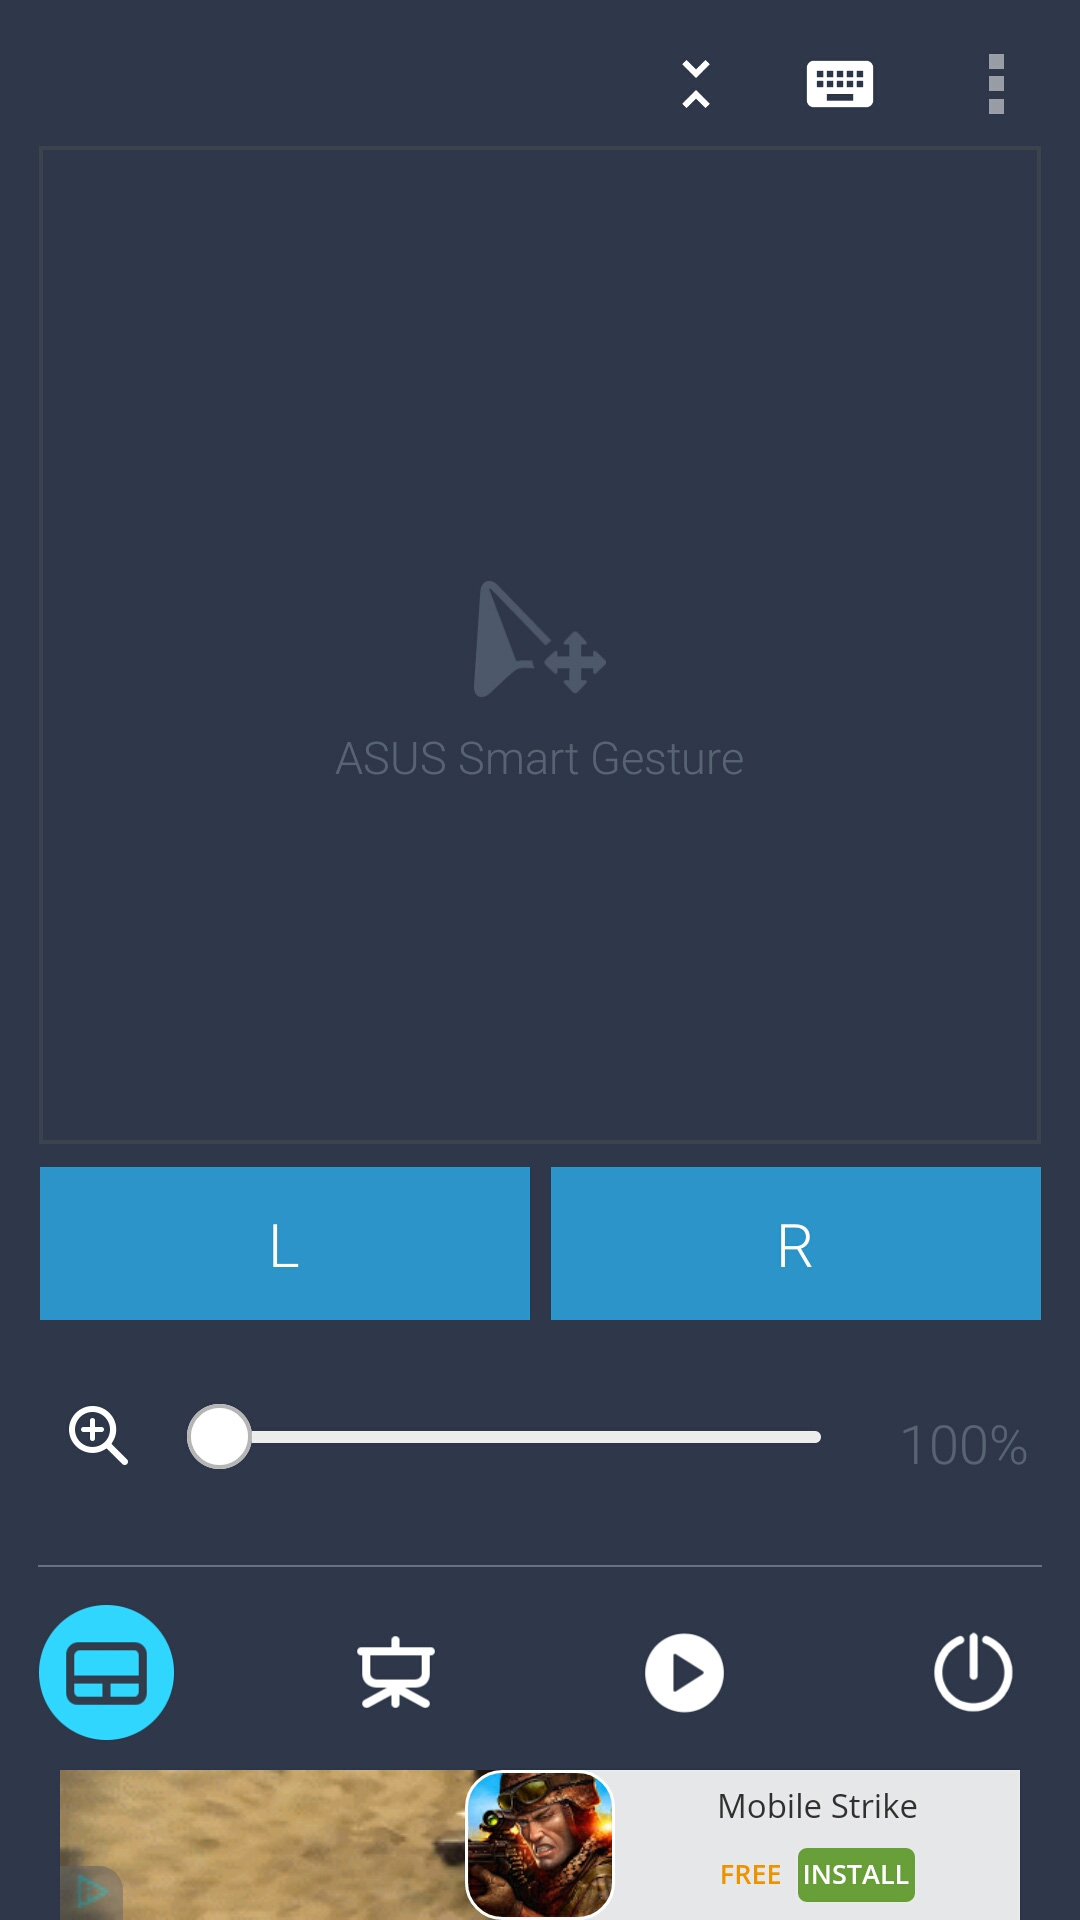 Control your PC with your ZenFone using ASUS Remote Link